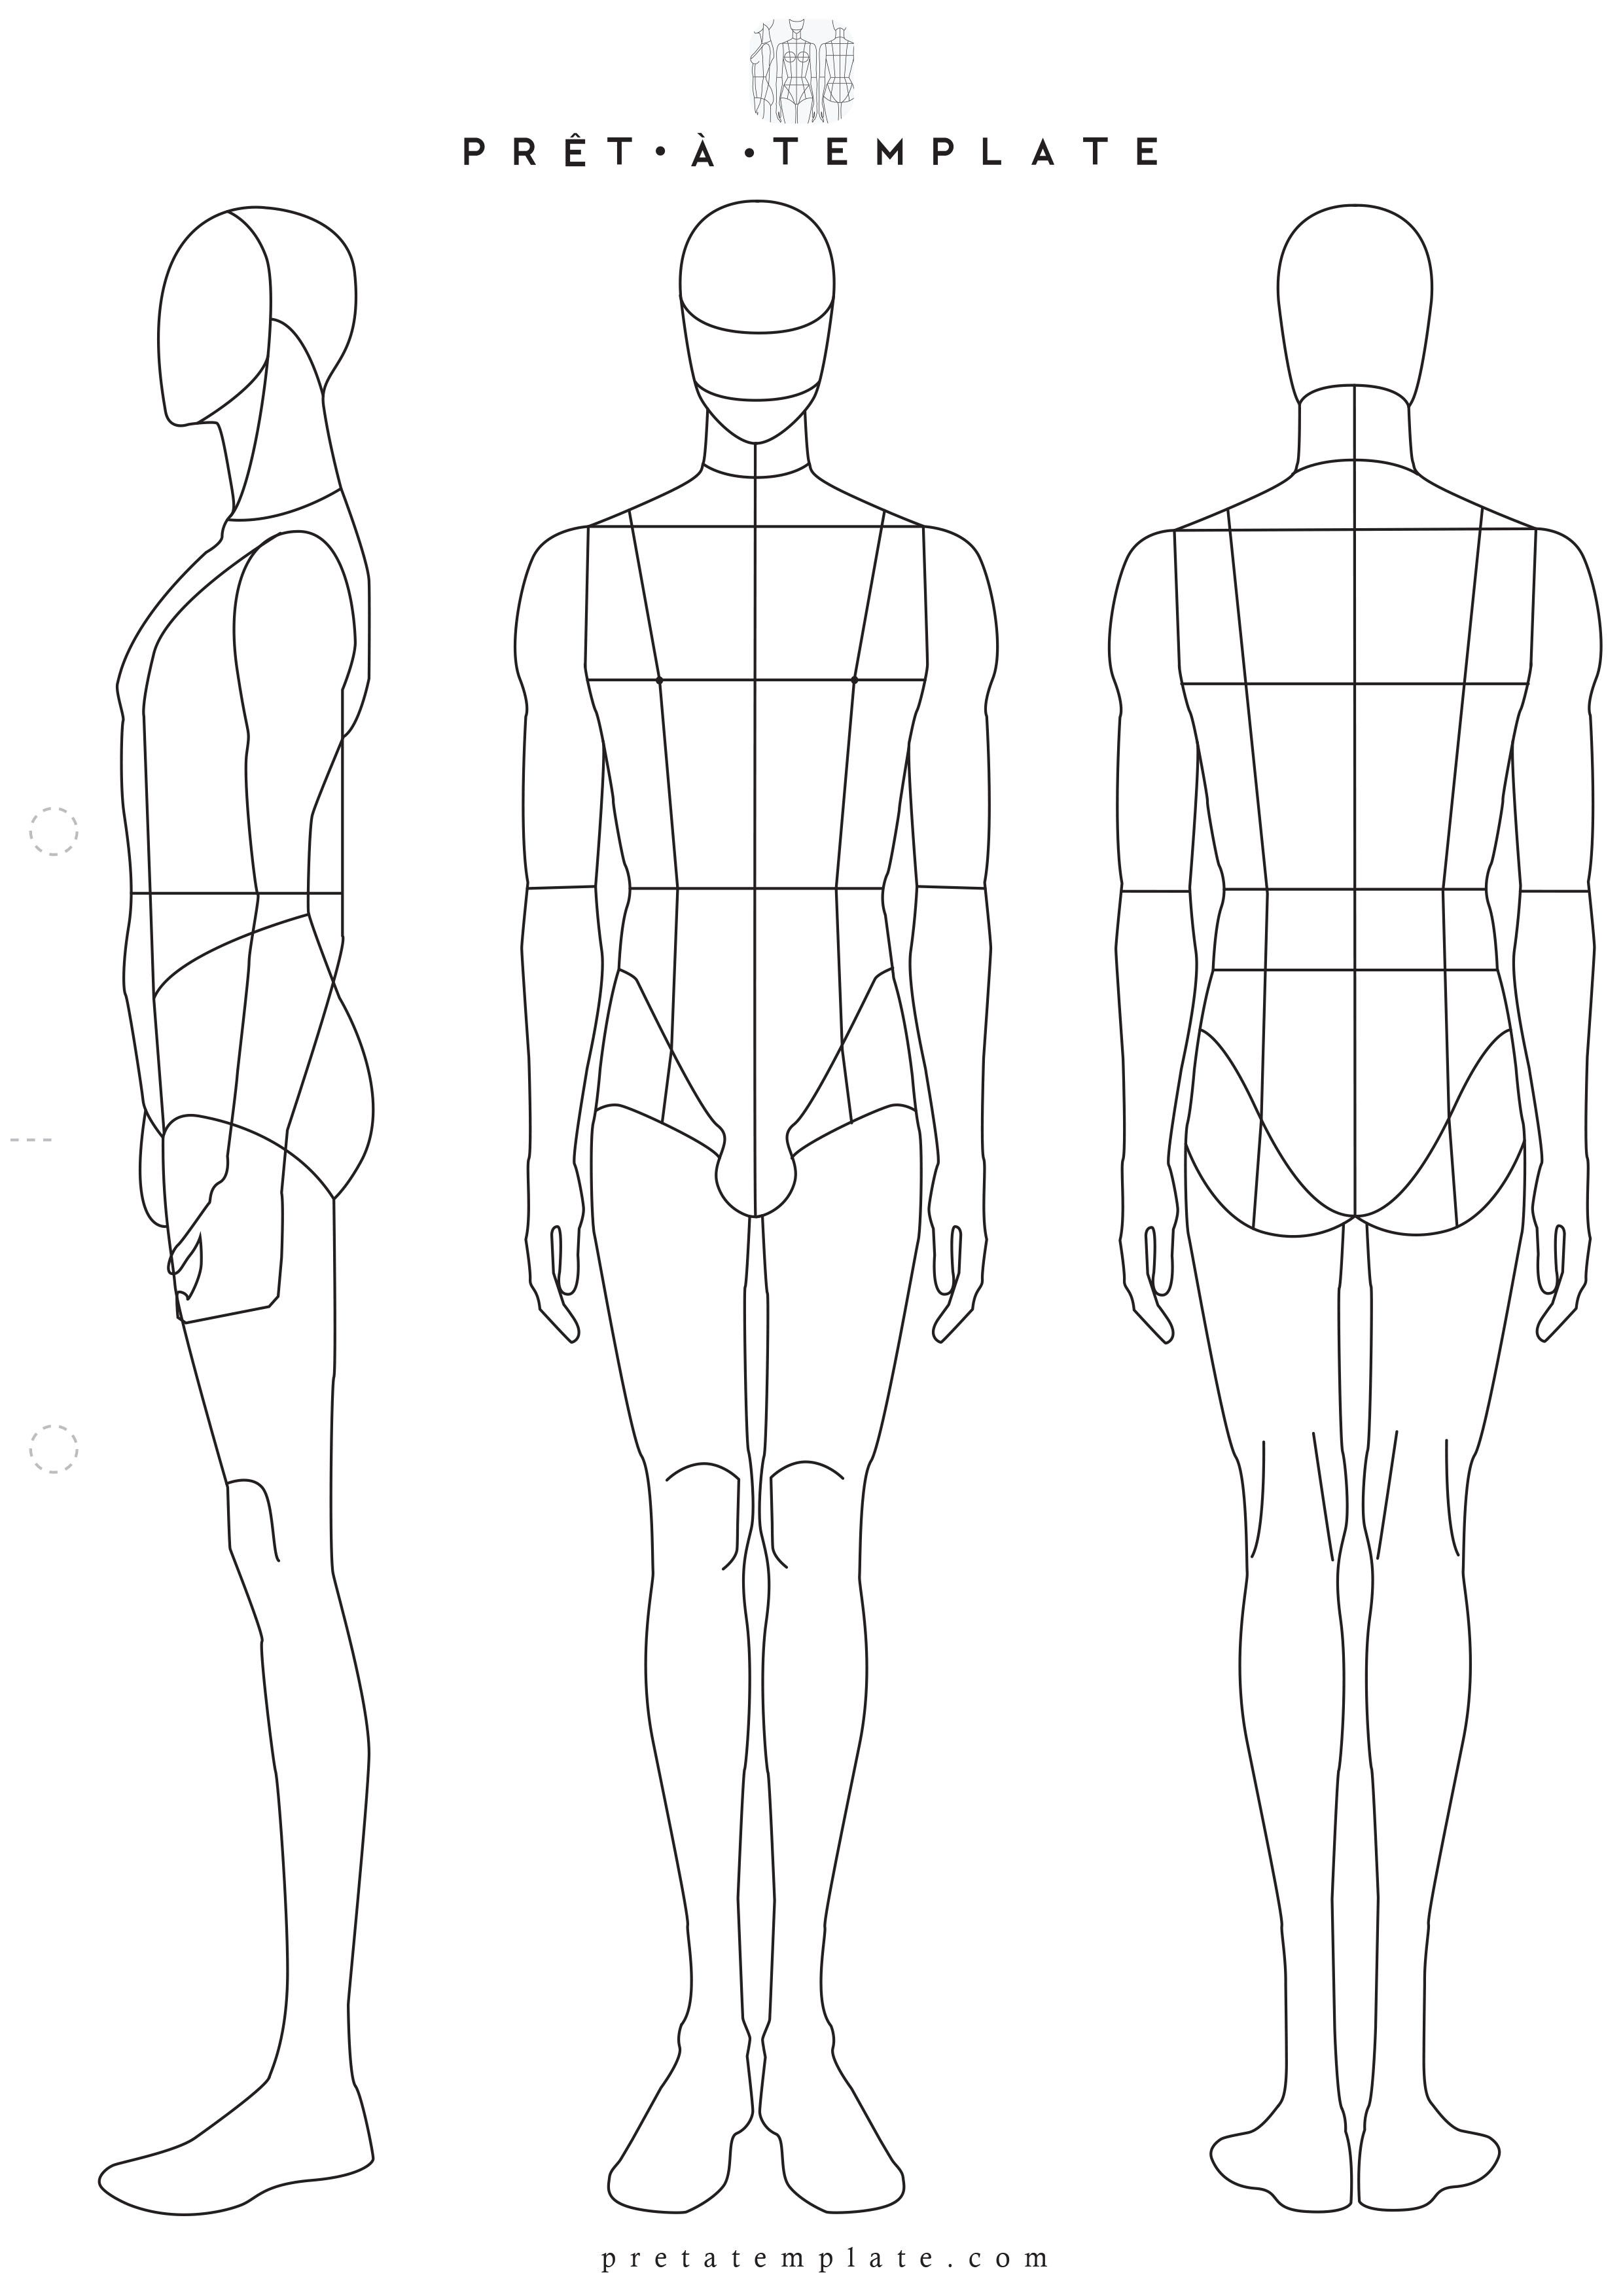 Man male body figure fashion template (D-I-Y your own